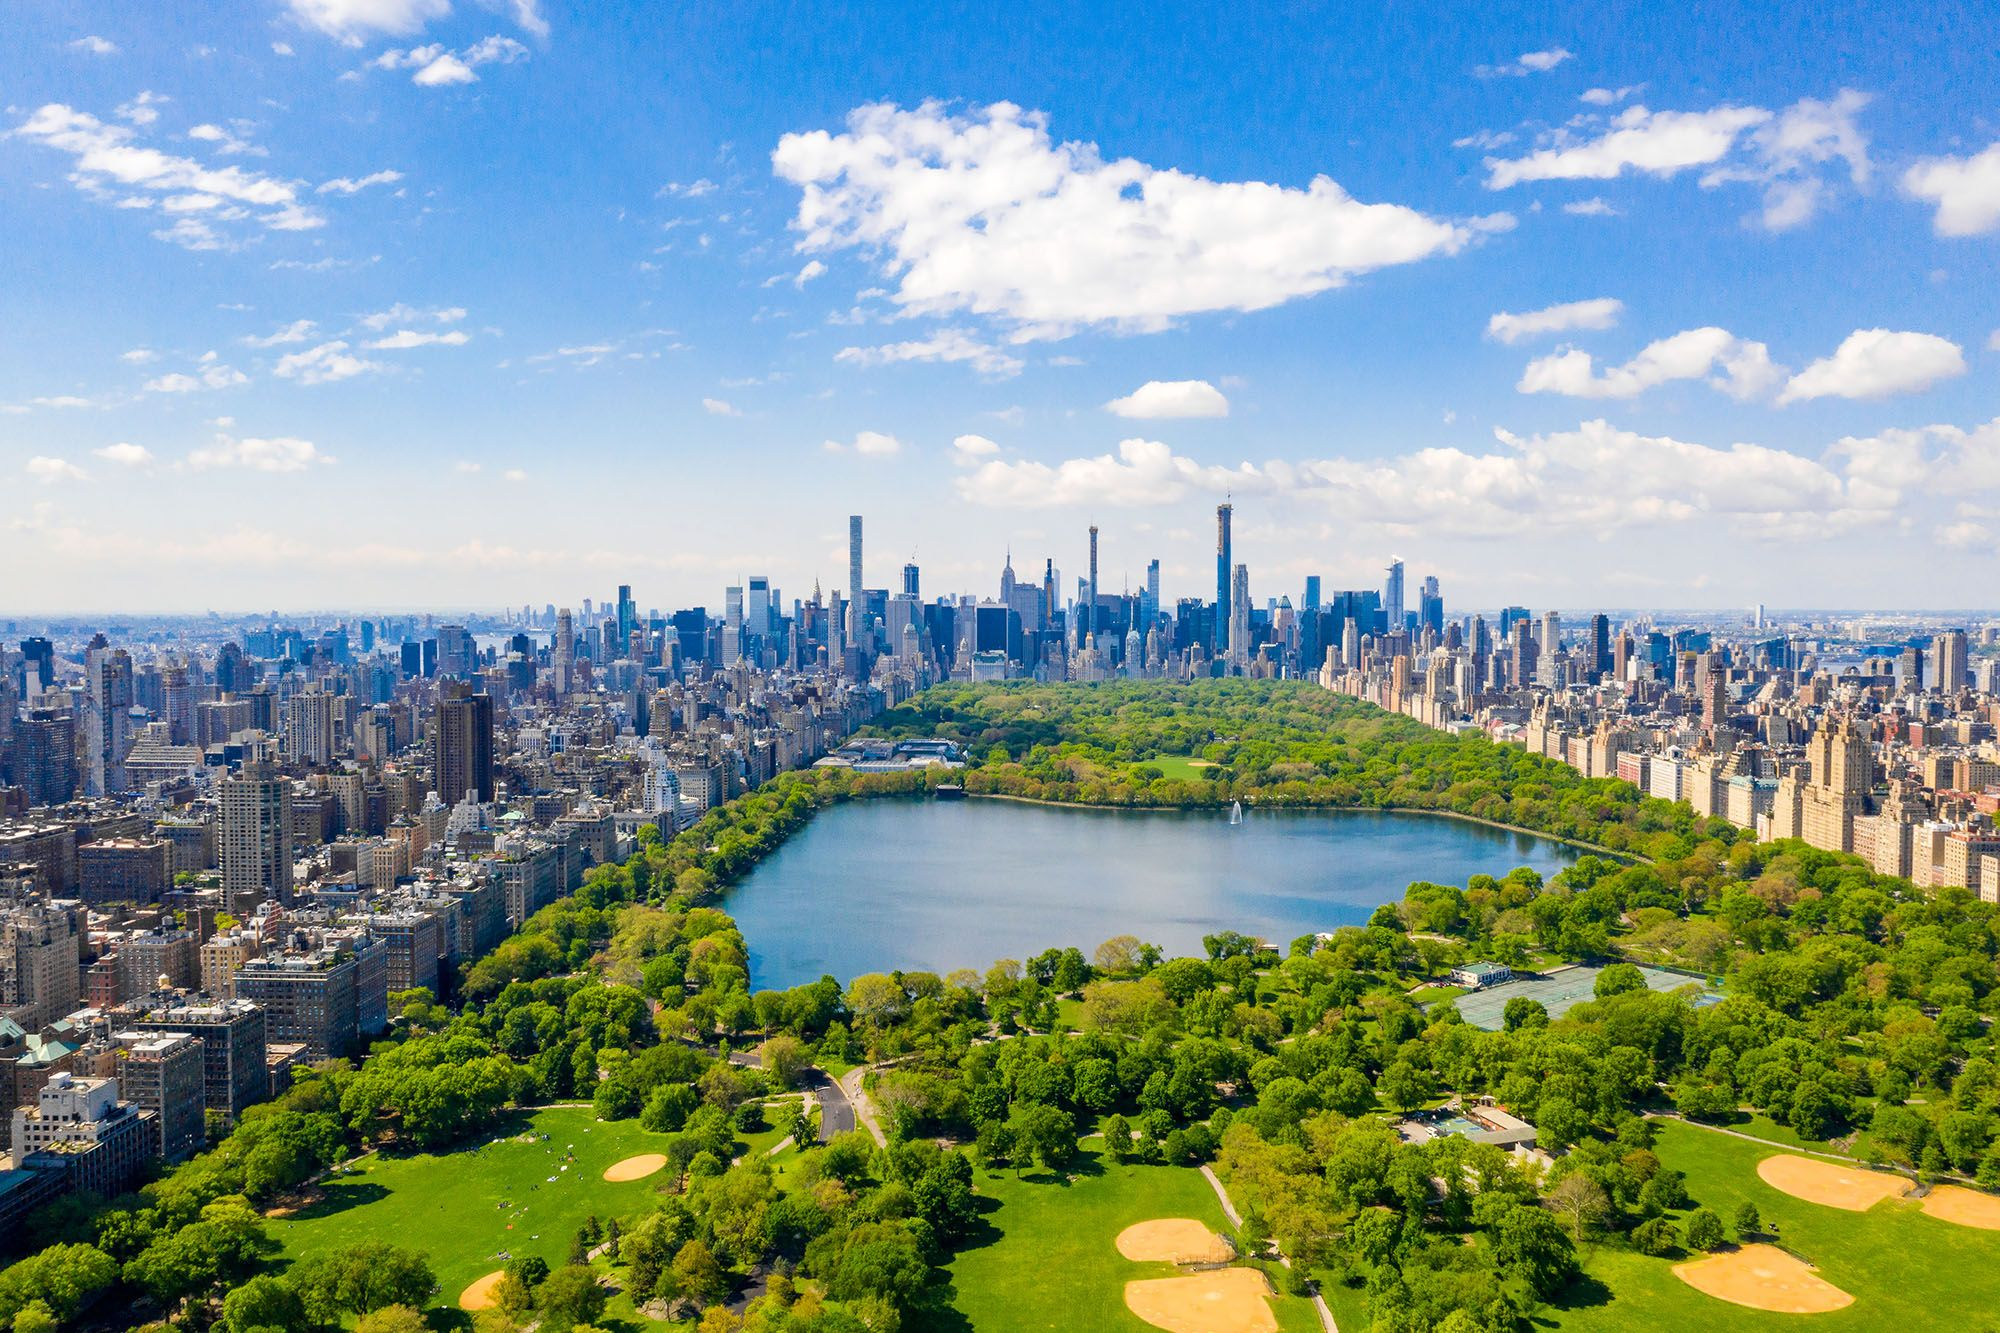 Serious crimes are on the rise in Central Park